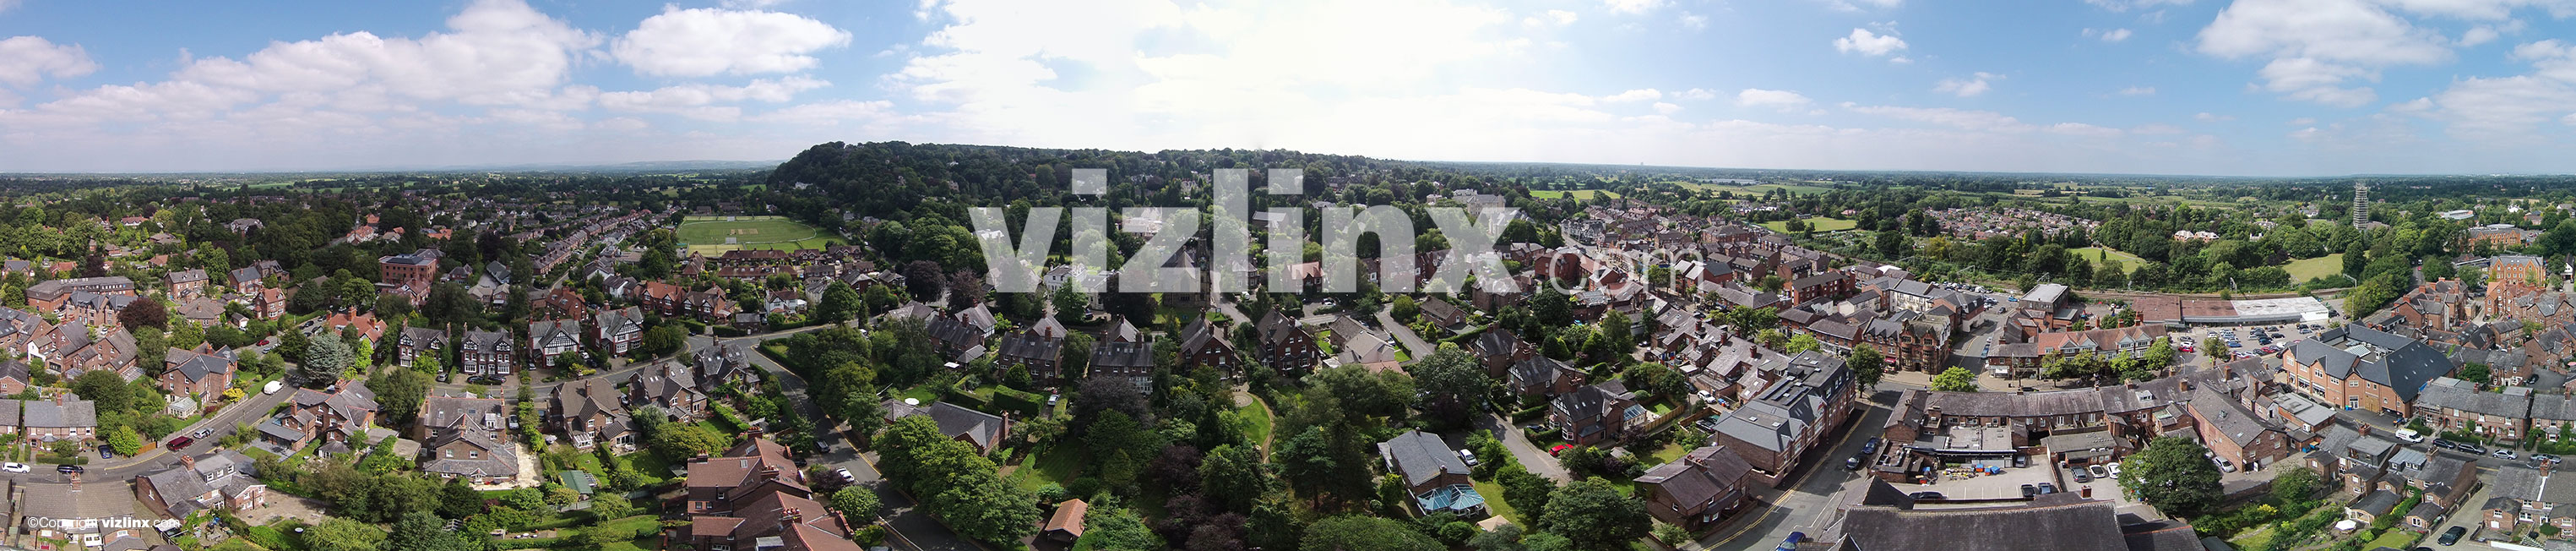 Panorama of Alderley Edge, Cheshire, vizlinx.com